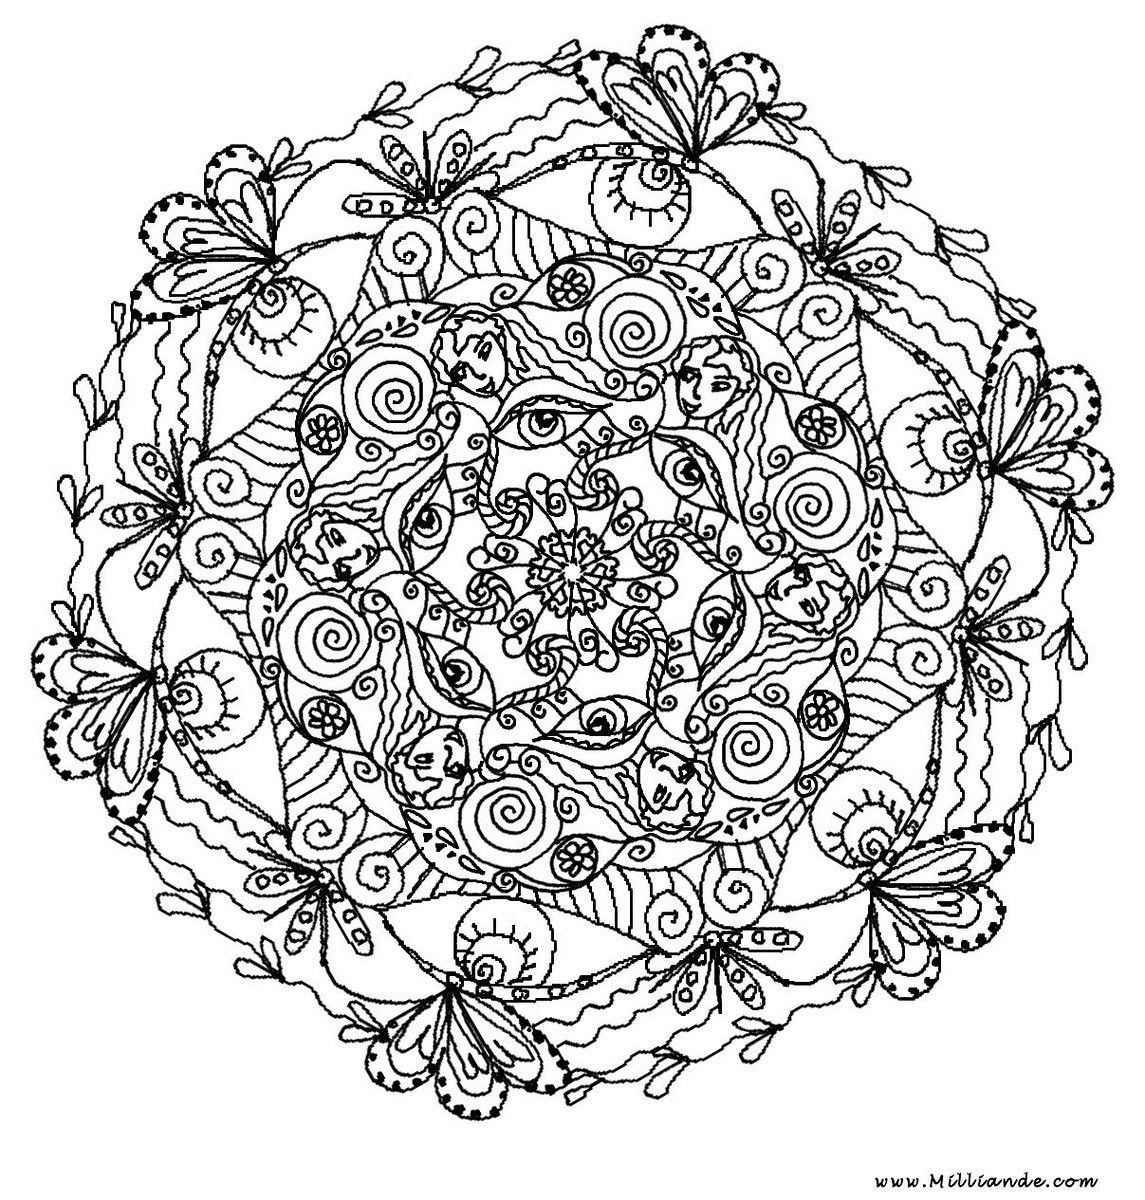 spectacular printable butterfly mandala coloring pages with free printable advanced coloring pages and free printable advanced